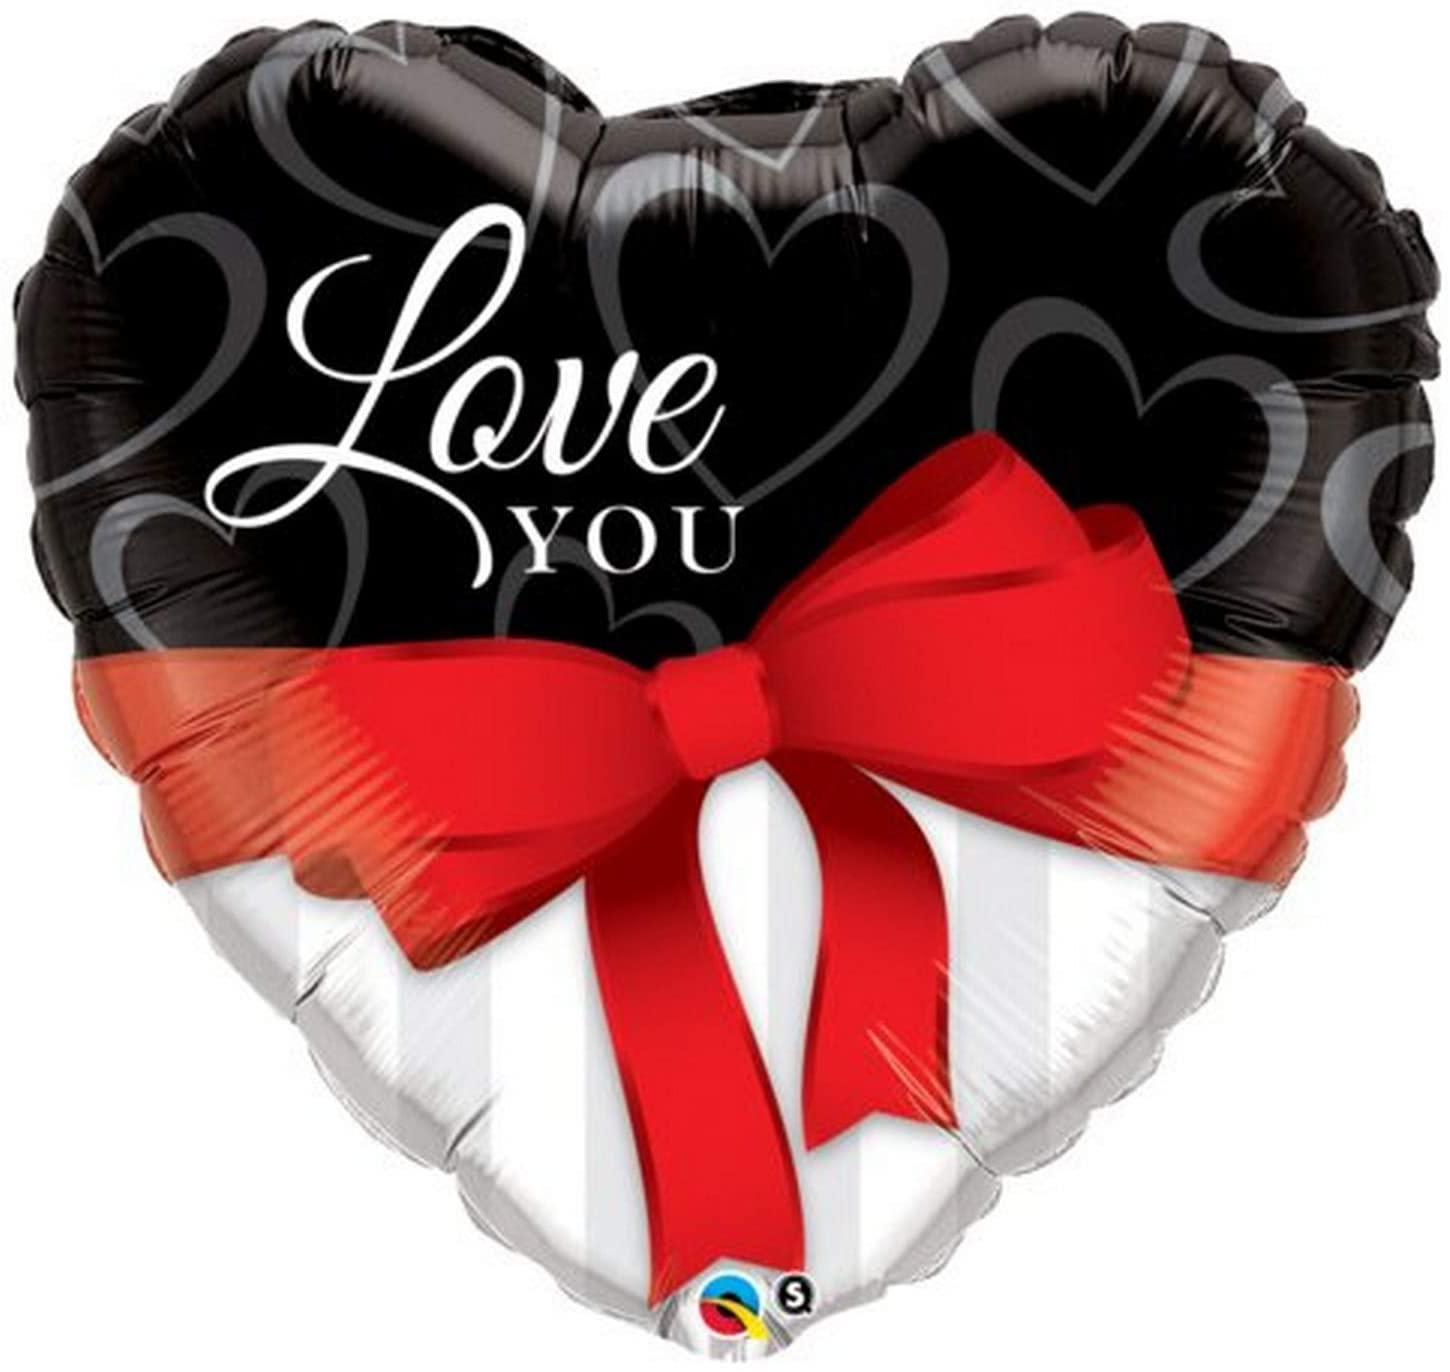 Love You Red Ribbon 36 inch Heart Foil